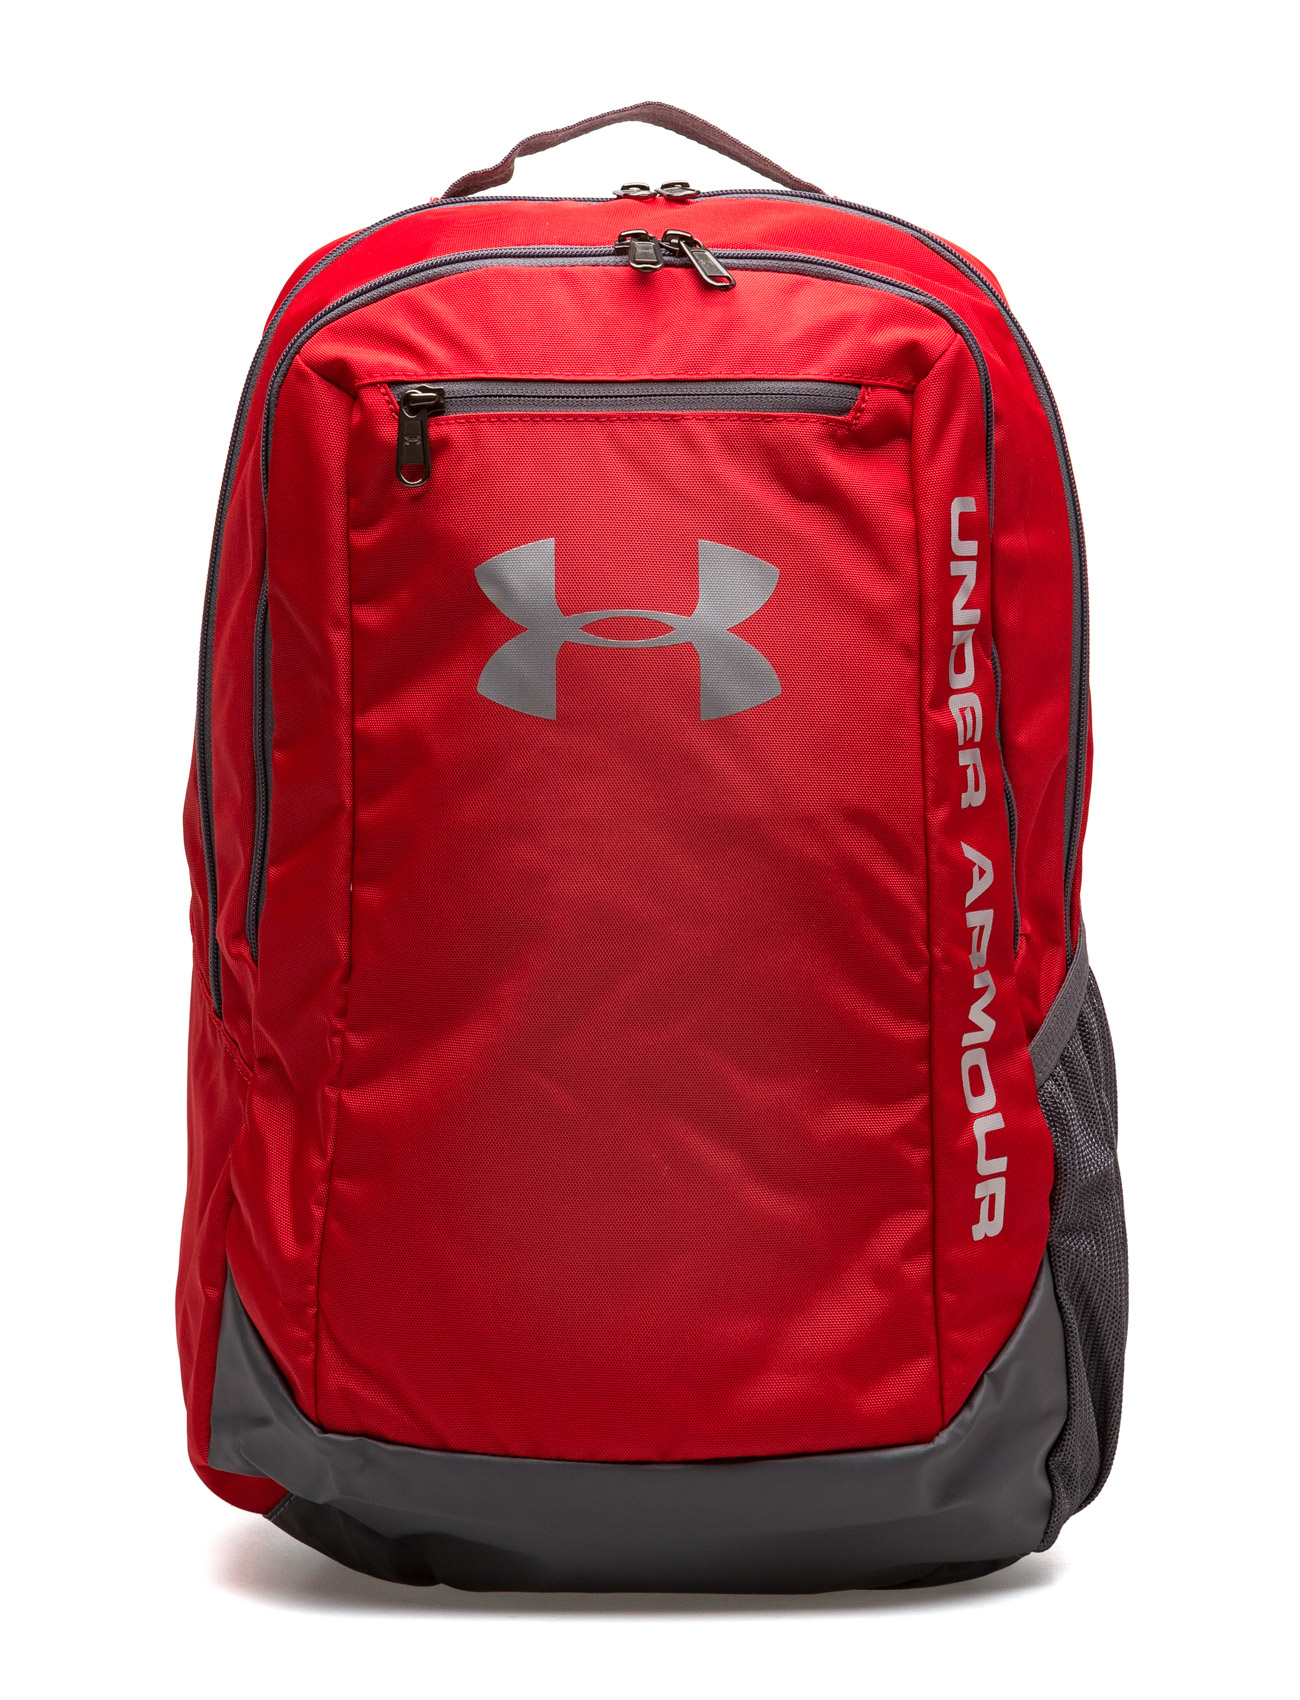 Ua hustle backpack ldwr fra under armour fra boozt.com dk